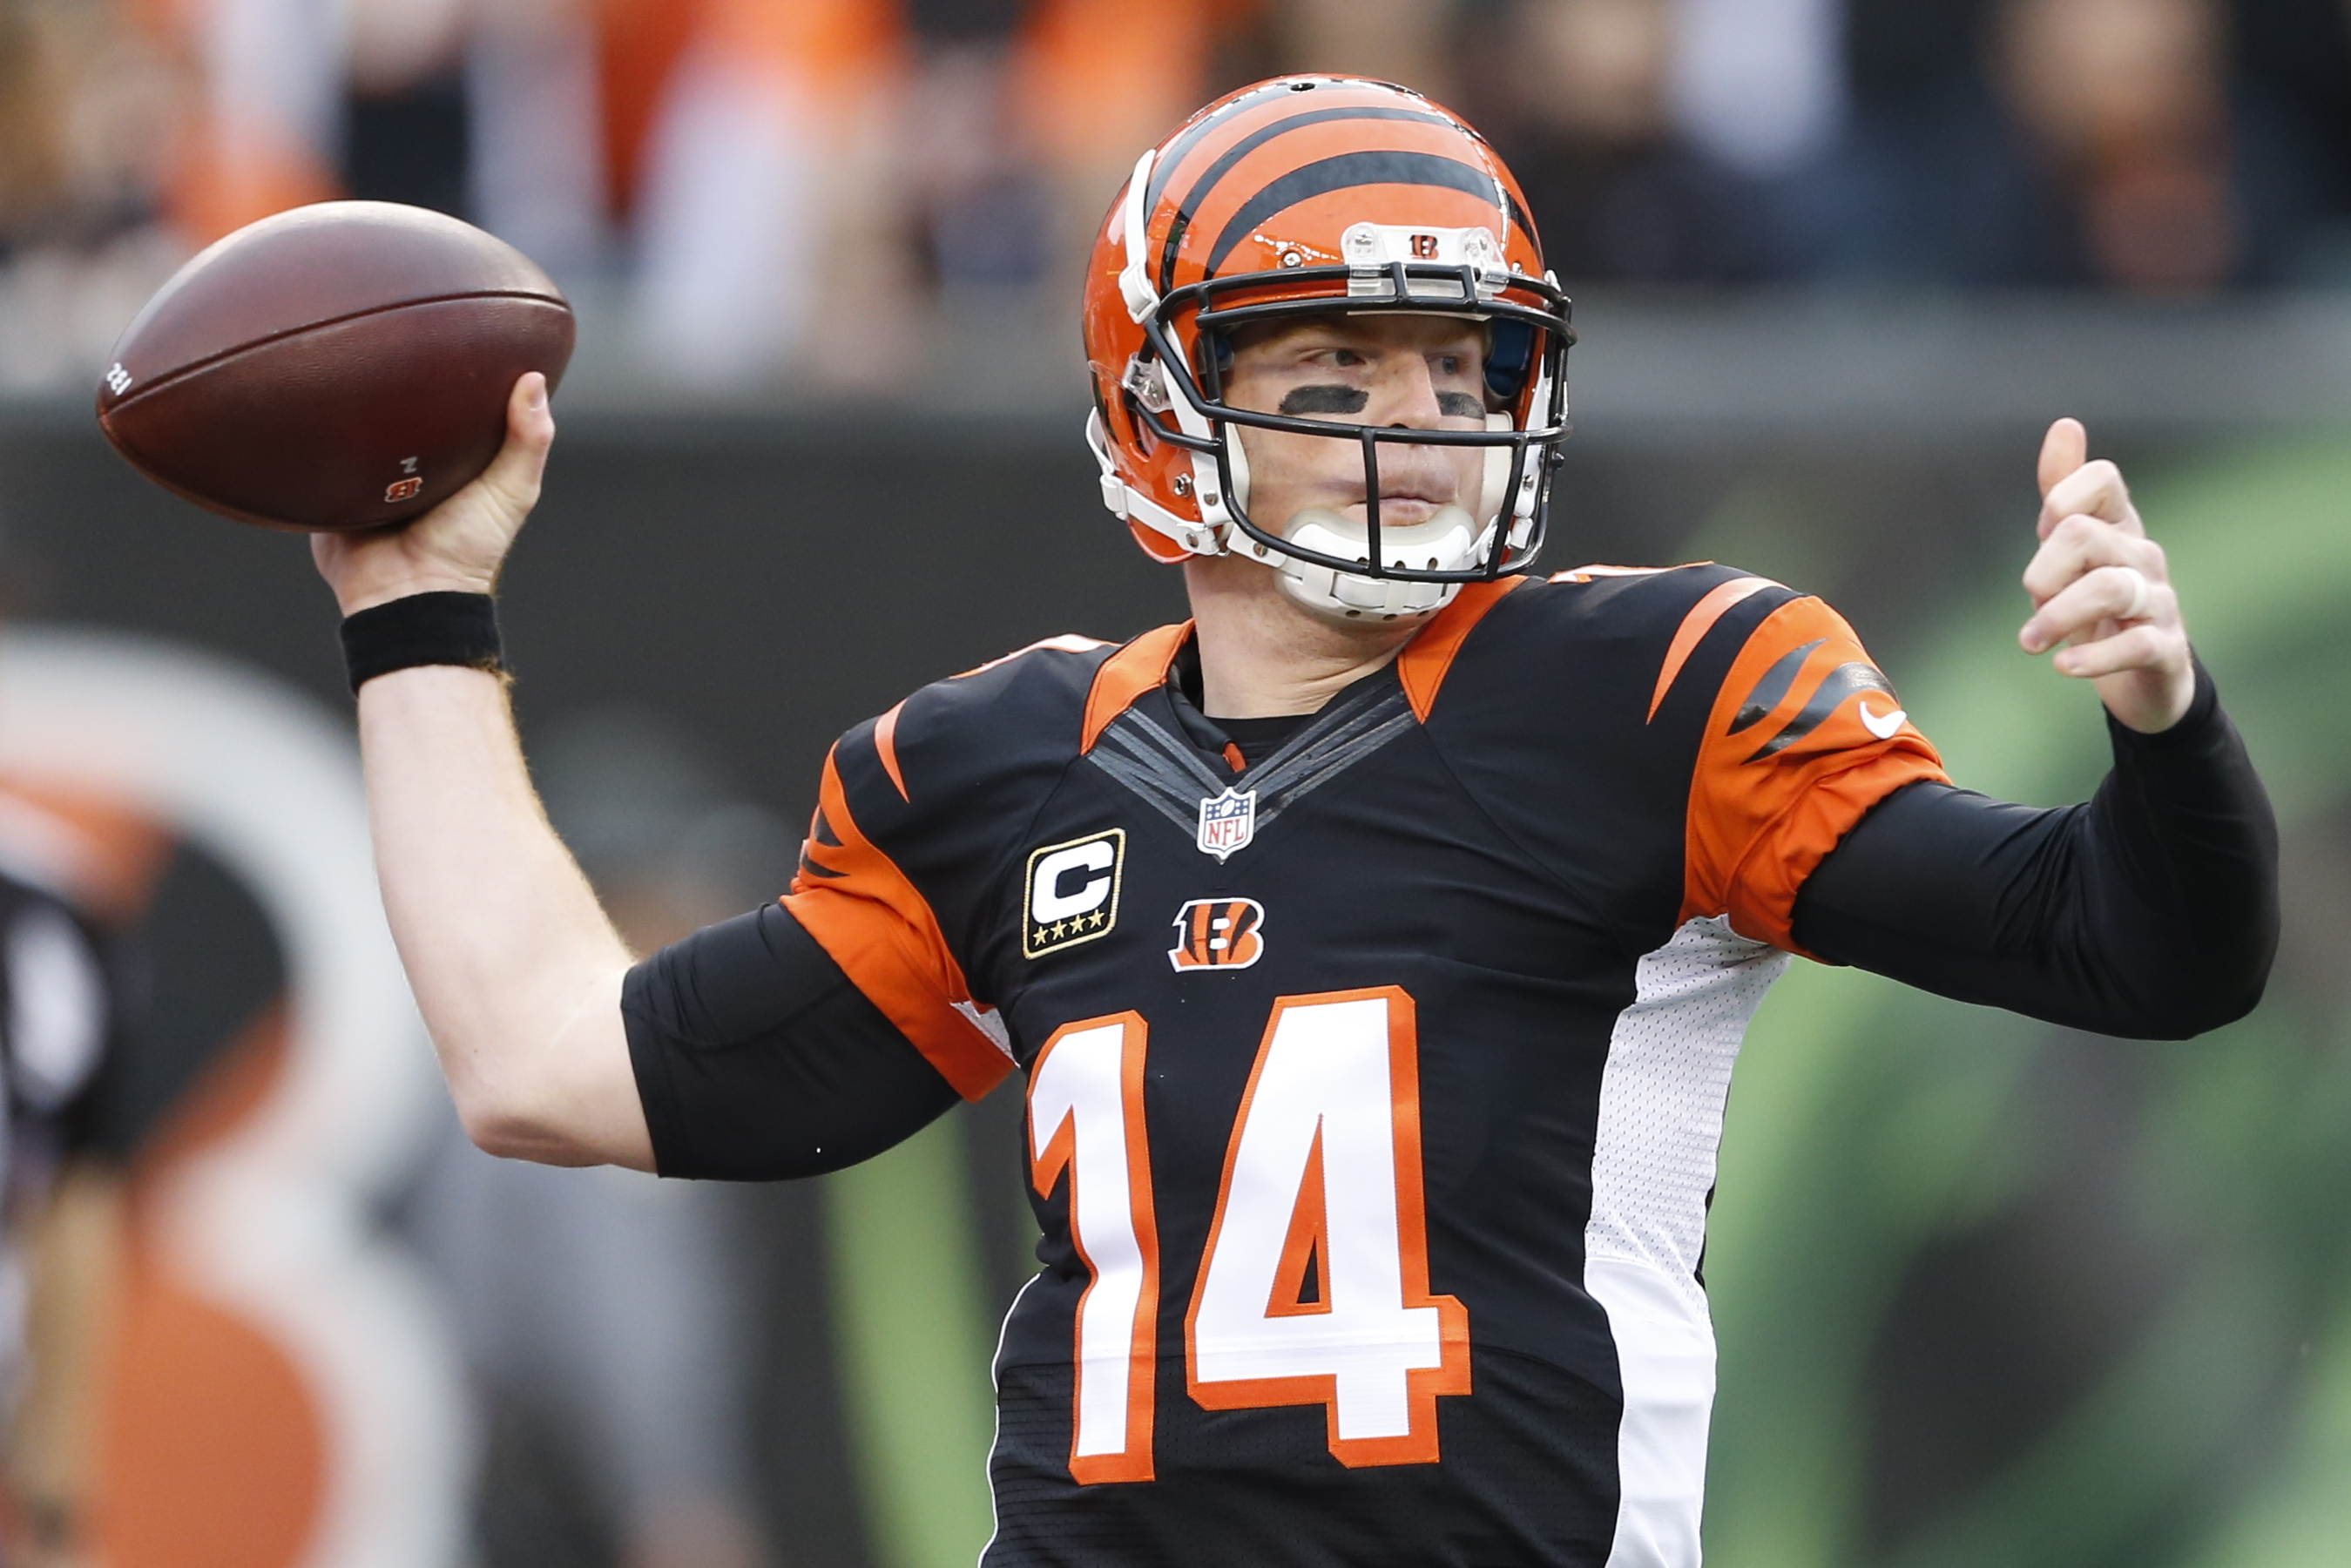 FILE - In this Dec. 13, 2015 file photo, Cincinnati Bengals quarterback Andy Dalton throws in the first half of an NFL football game against the Pittsburgh Steelers in Cincinnati. Andy Dalton had his breakout season, leading the AFC in passer rating befor